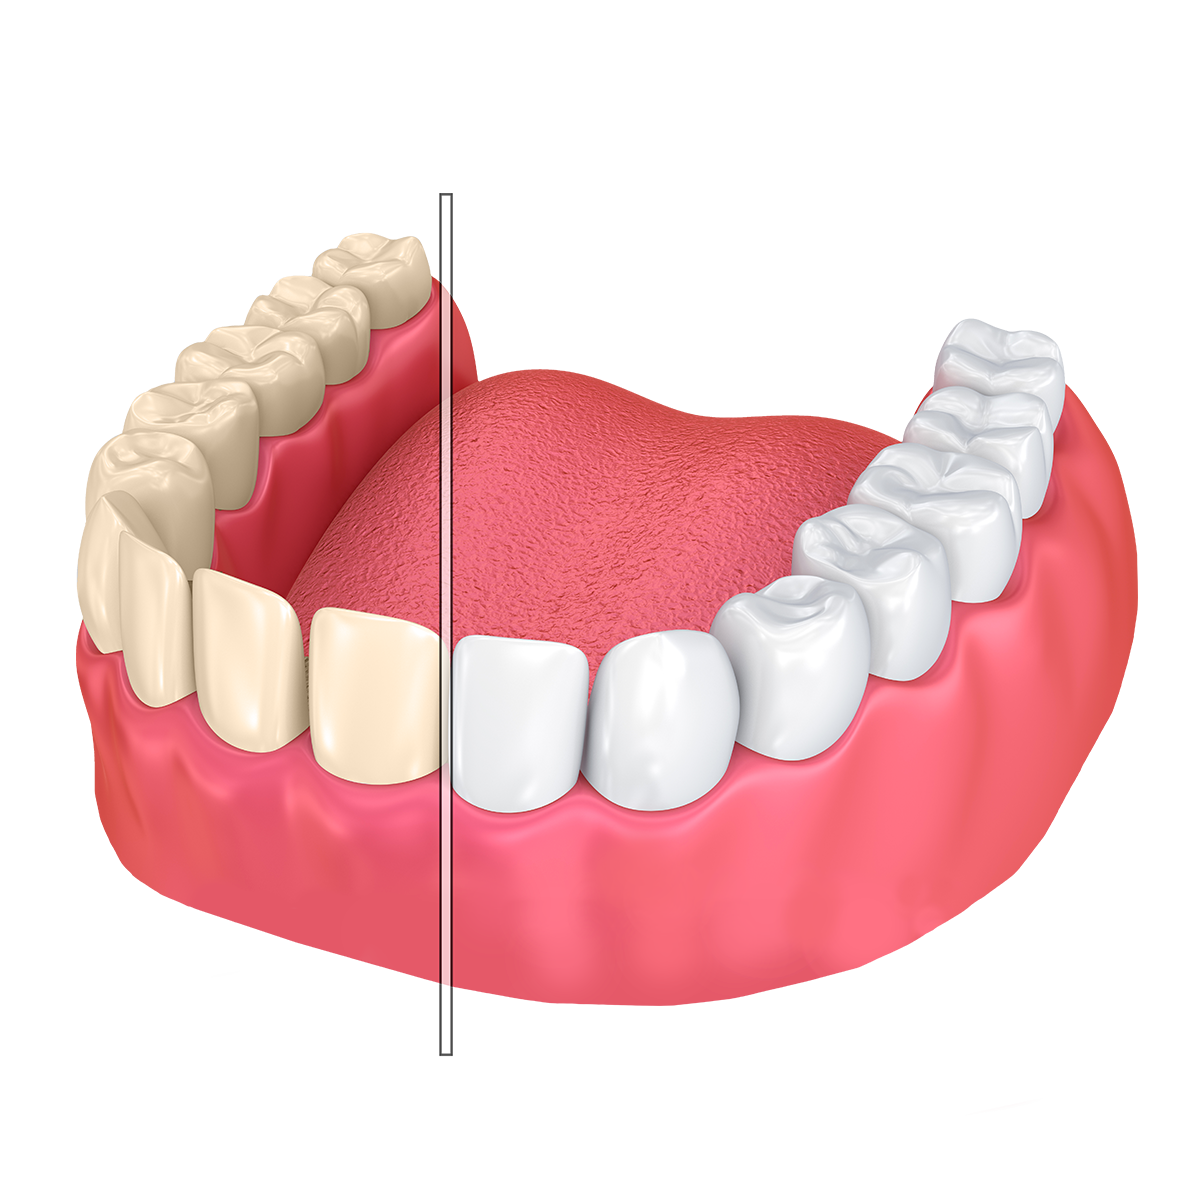 Discolored teeth and those treated with teeth whitening